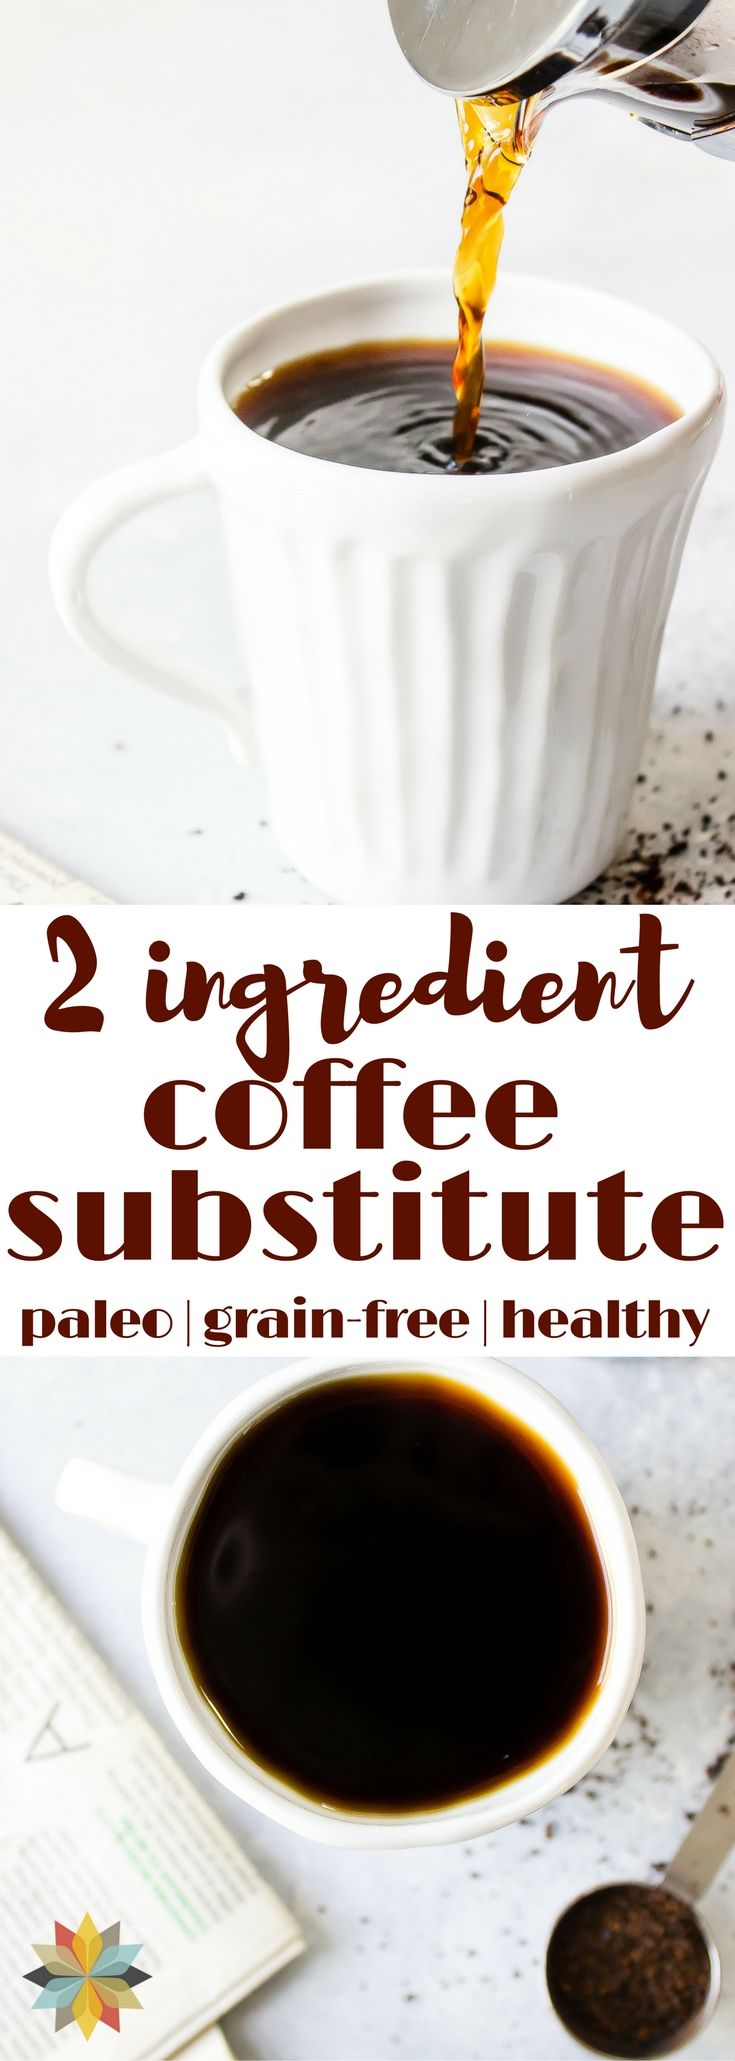 This coffee substitute is rich, delicious, and good for you! Great for those trying to break the coffee habit or as a decaf alternative. #paleo #aip #thm #lowcarb #glutenfree